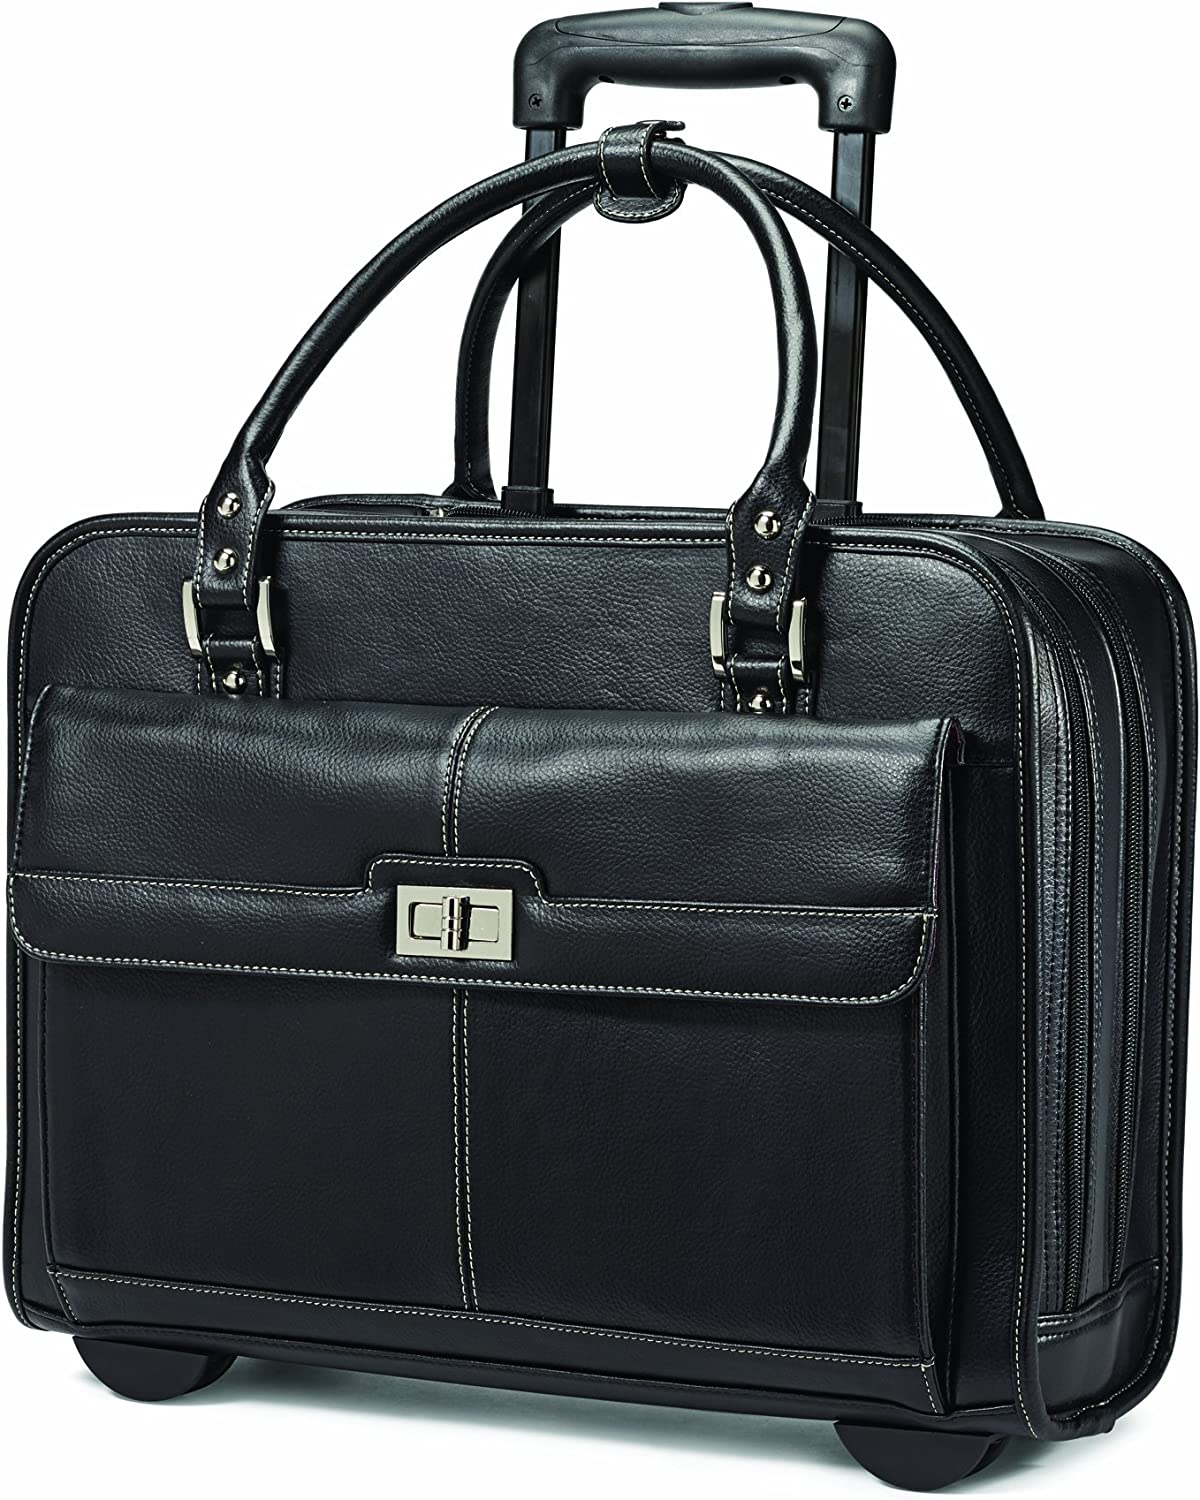 Samsonite Womens Business Travel Set Black